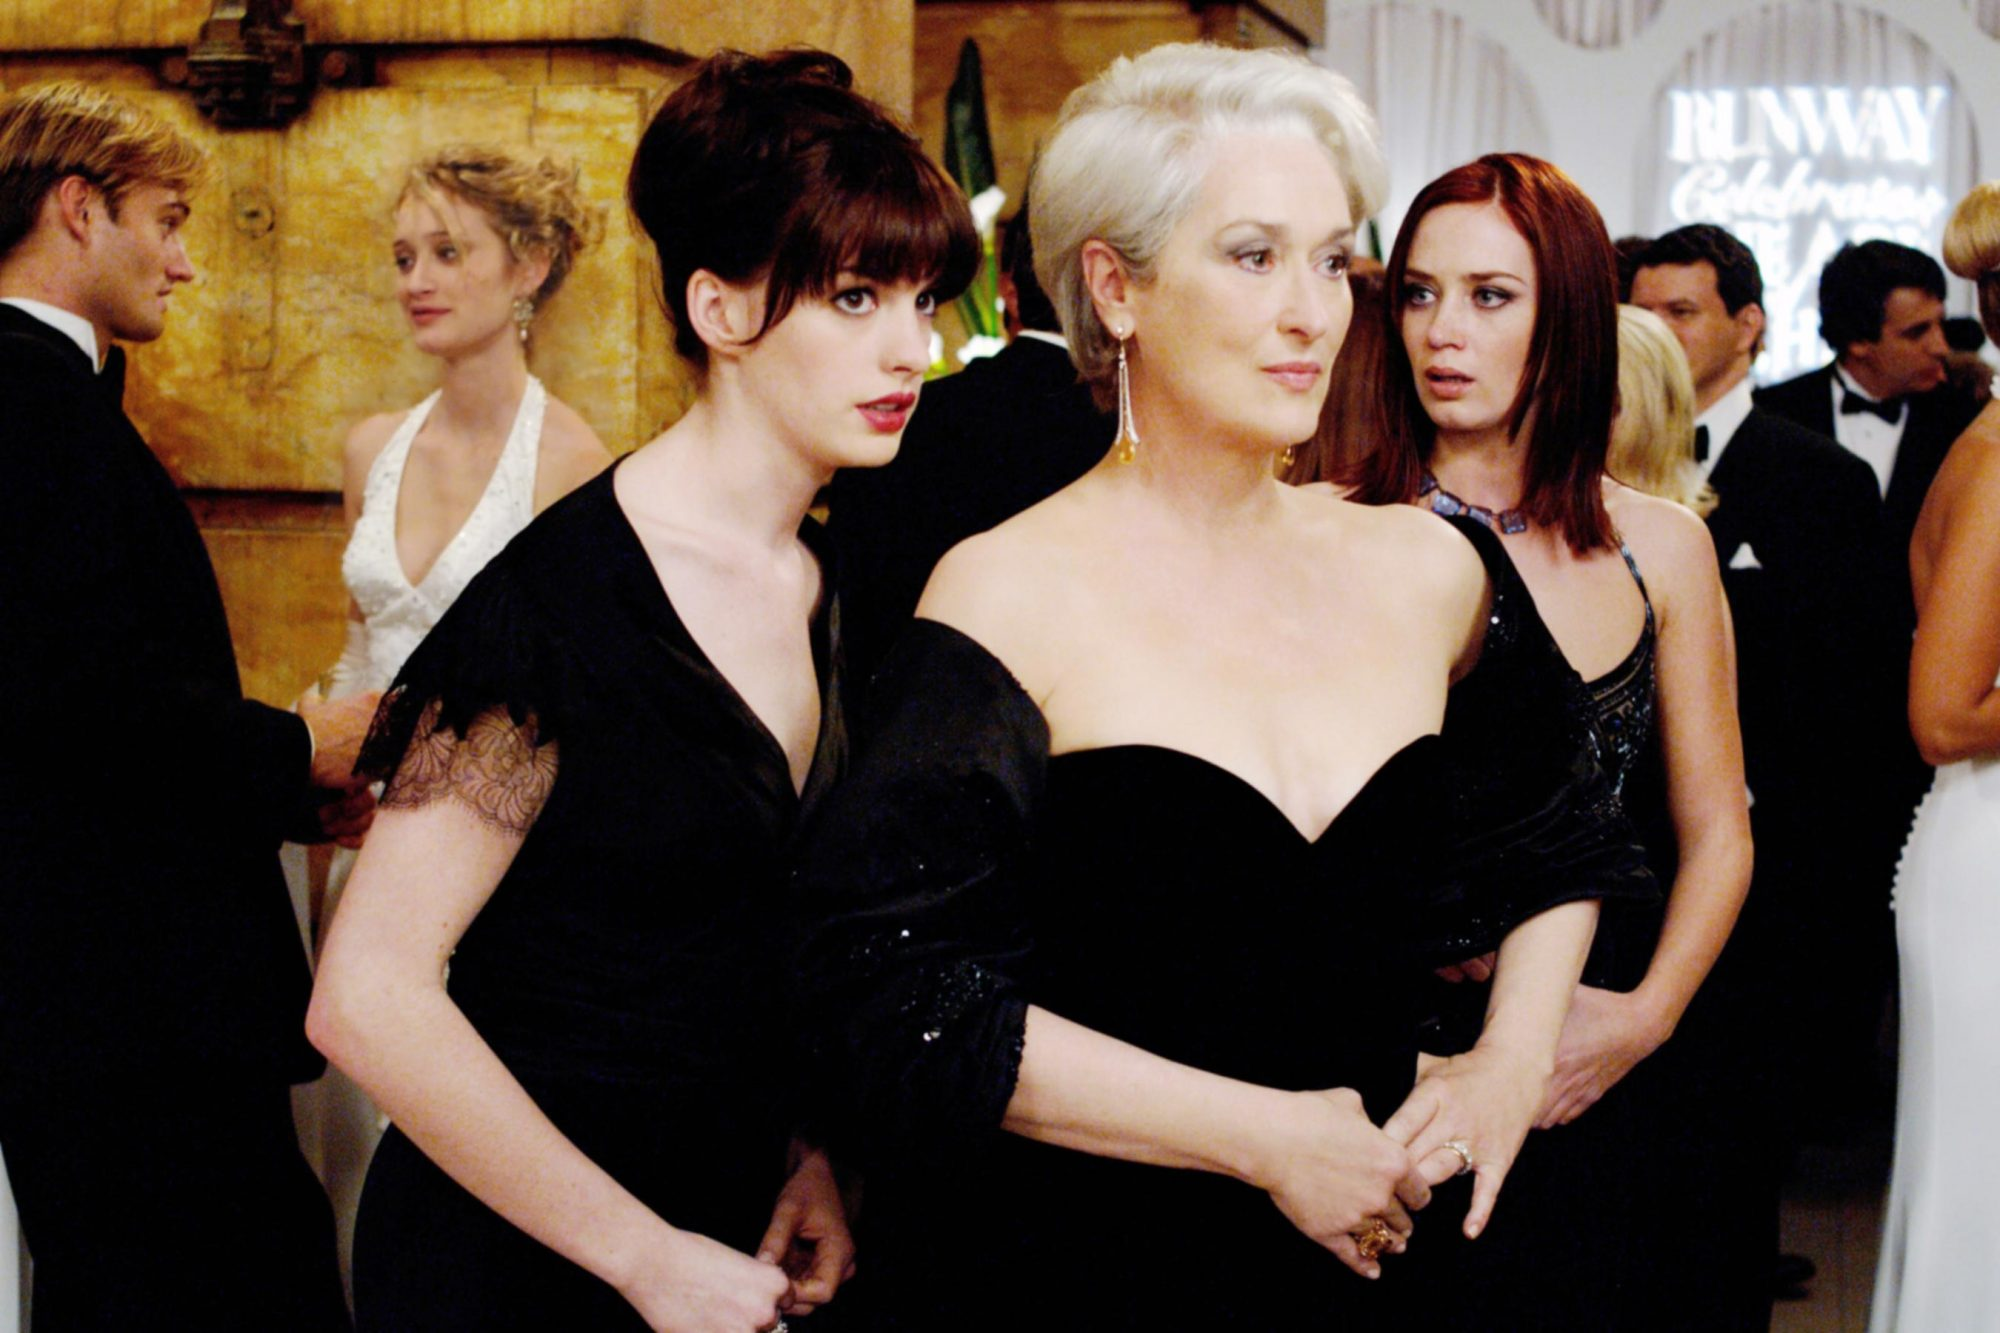 THE DEVIL WEARS PRADA, Anne Hathaway, Meryl Streep, Emily Blunt, 2006, TM & Copyright (c) 20th Centu